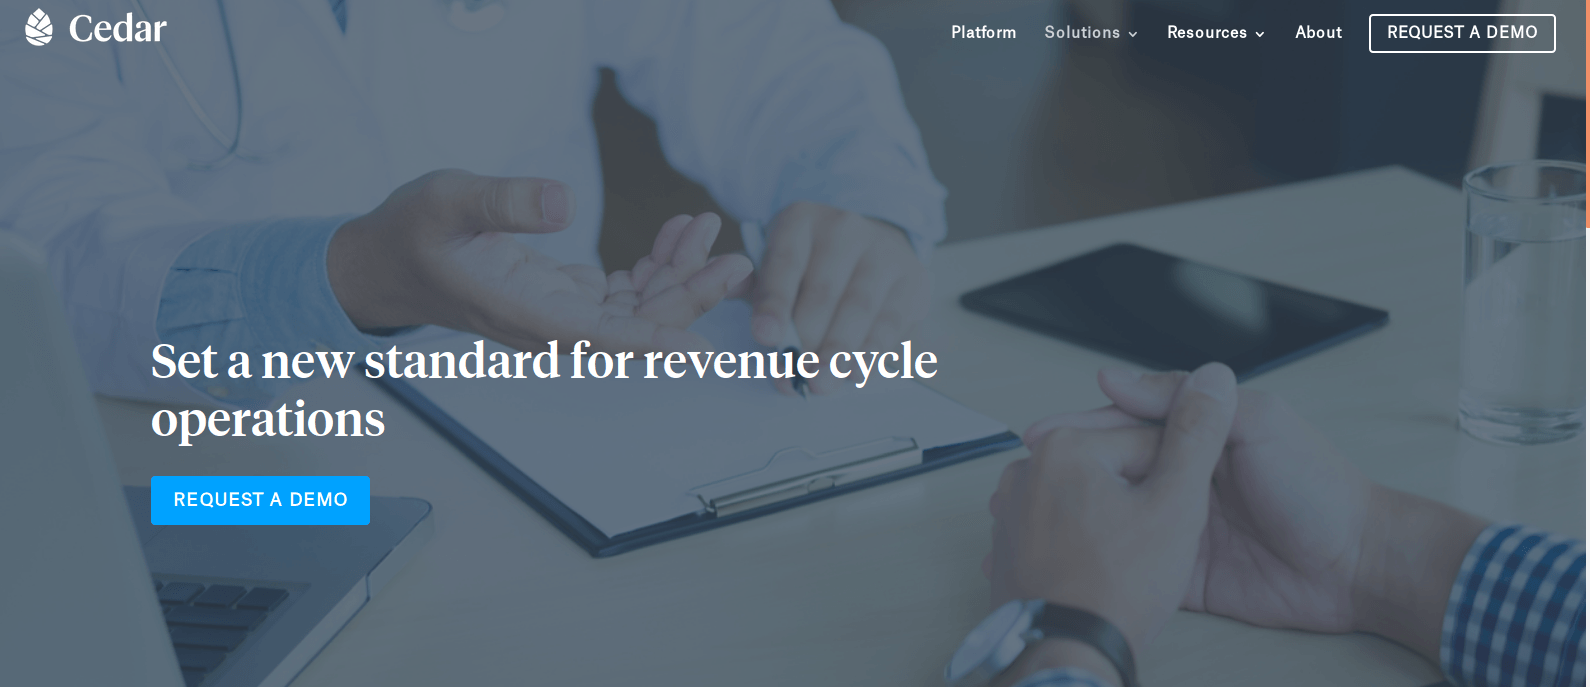 Rev Cycle Startup Cedar Launches With $13M for Data-Driven Patient Payment Solution